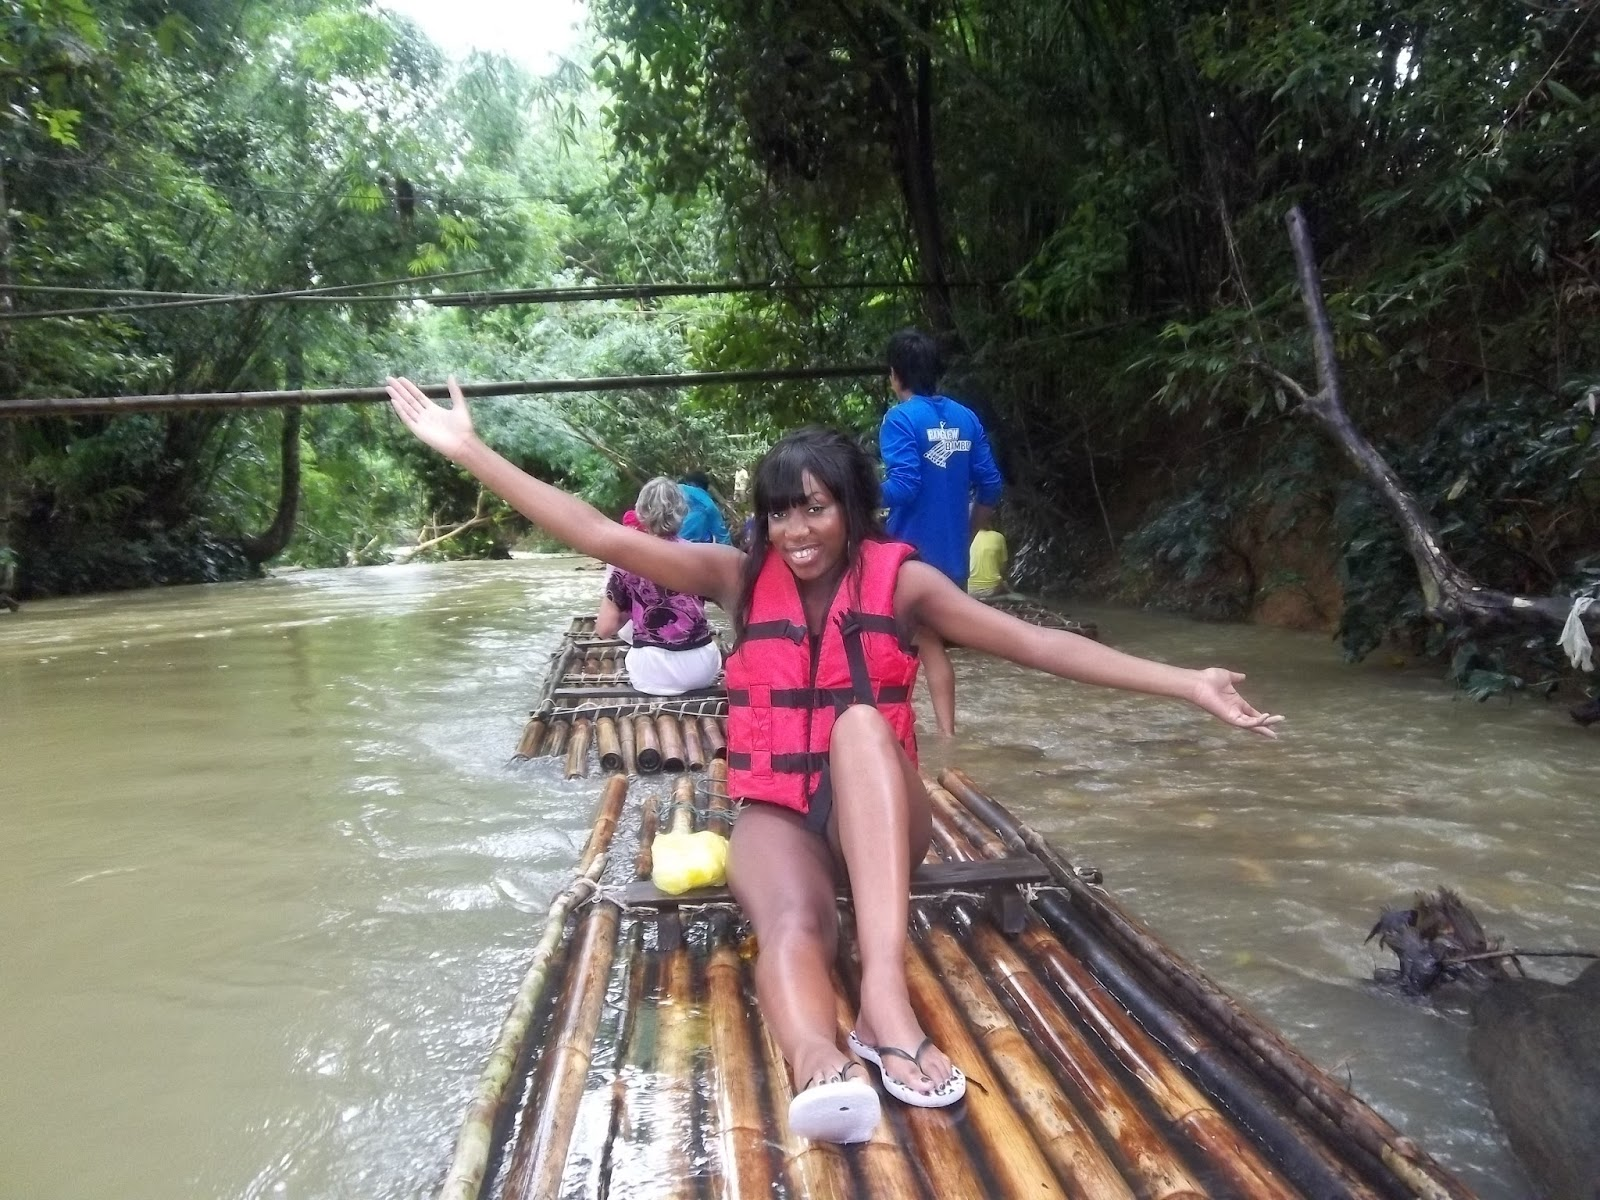 Bamboo rafting in Thailand, khao lak safari review thailand, black girl water rafting